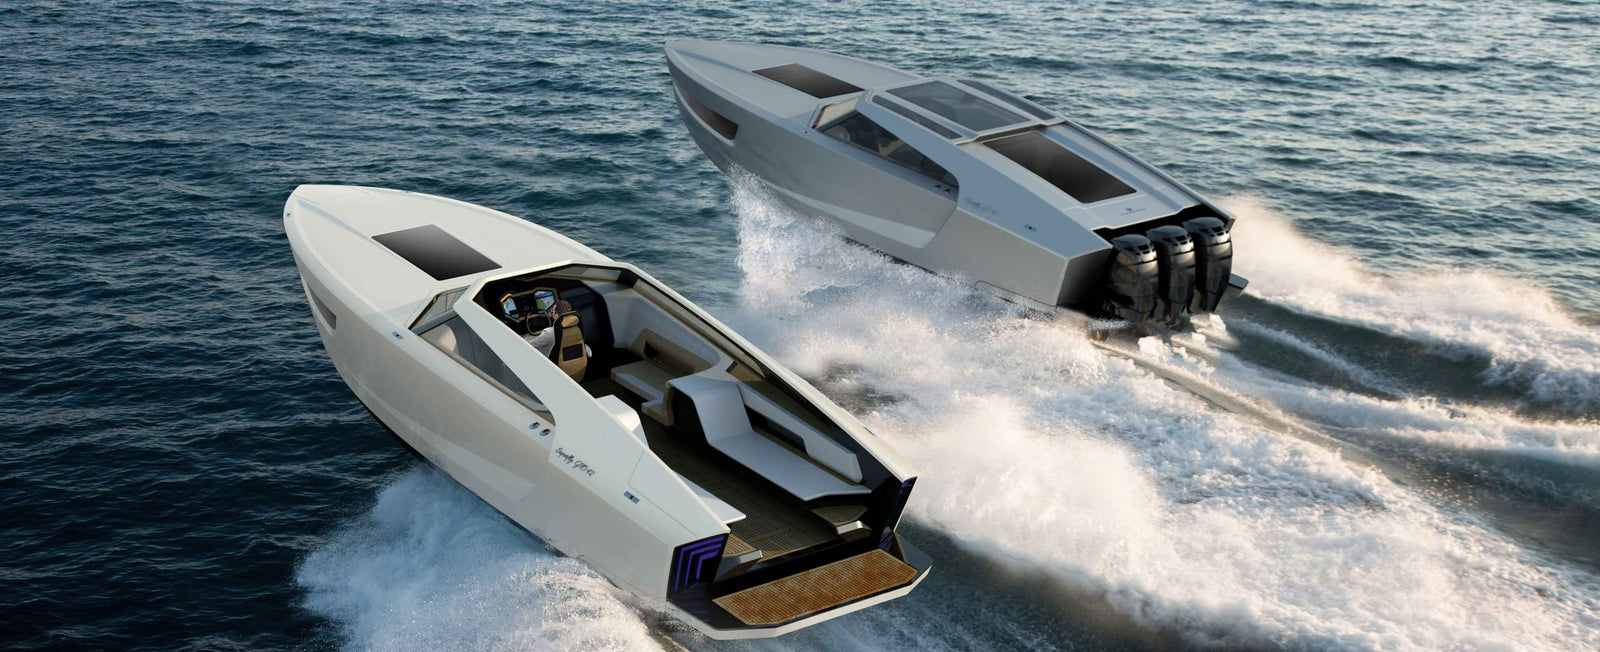 Superfly GTO 42 - Open Air, Open Seas, Open Throttle